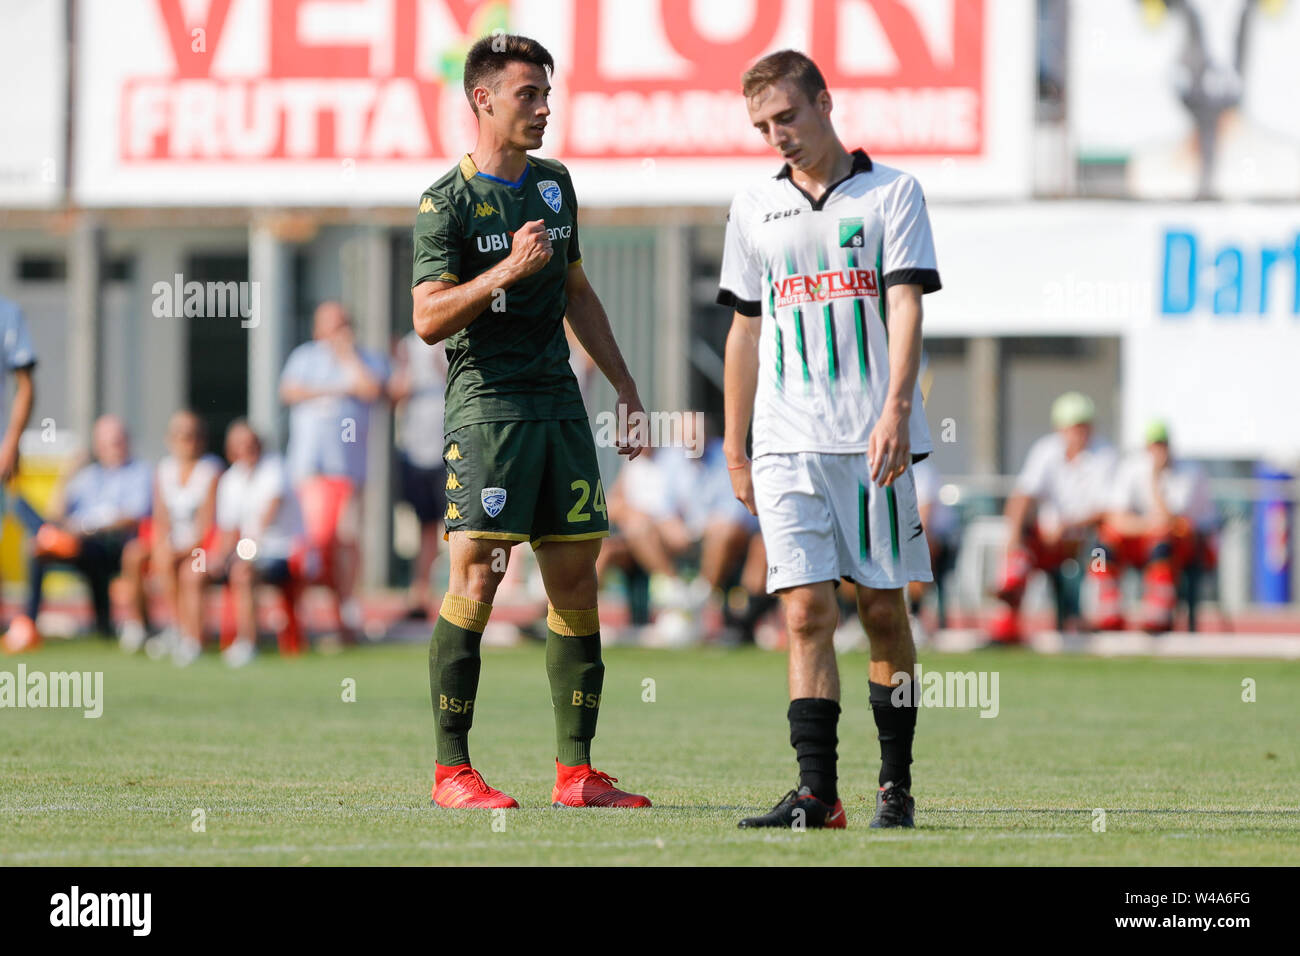 Darfo Boario, Italia. 21st July, 2019. Foto Stefano Nicoli/LaPresse21 luglio 2019 Darfo Boario (Bs), Italia sport calcio Amichevole Brescia Darfo Pre Campionato di calcio Serie A 2019/2020 - Nella foto: Esultanza Viviani Photo Stefano Nicoli/LaPresse July 20, 2019 Darfo Boario (Bs), Italy sport soccer Friendly match Brescia Darfo League A TIM 2019/2020 - In the pic: Viviani Celebrates Credit: LaPresse/Alamy Live News - Stock Image